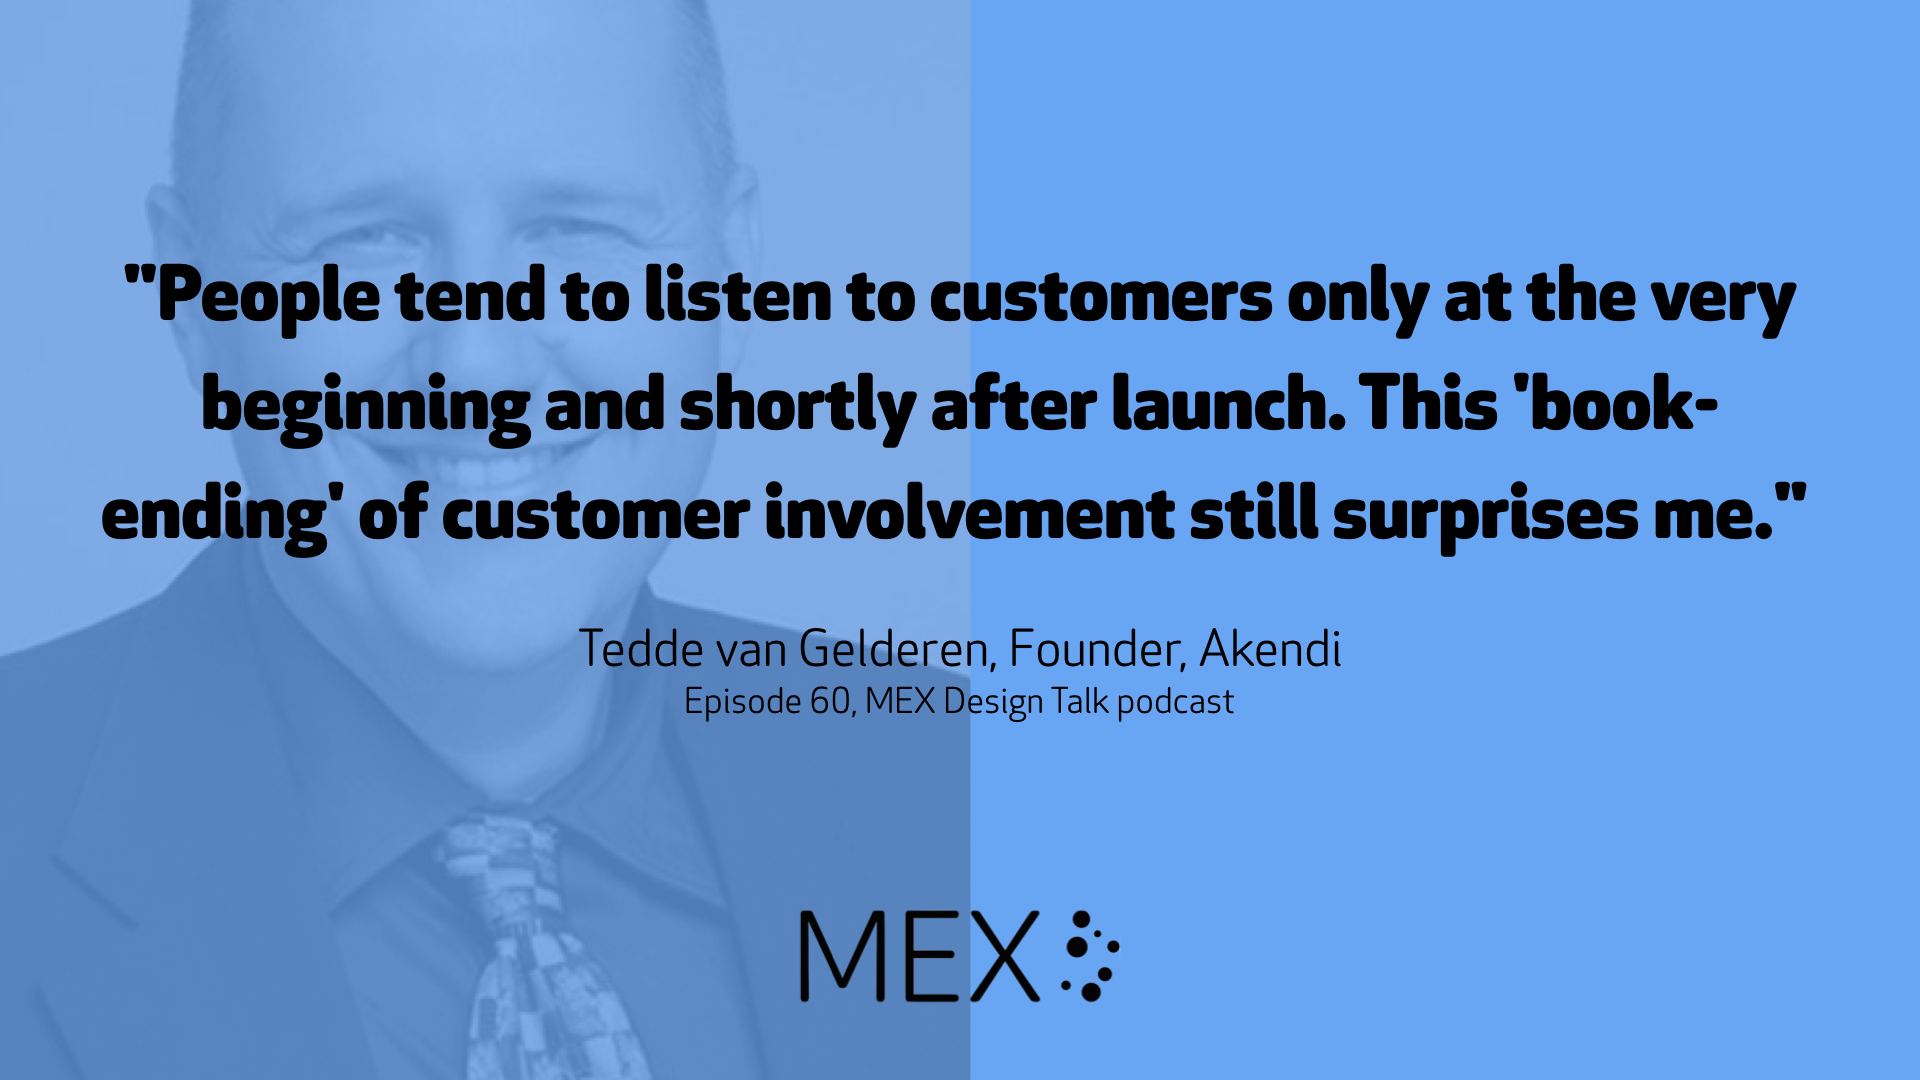 """People tend to listen to customers only at the very beginning and shortly after launch. This 'book-ending' of customer involvement still surprises me."" Tedde van Gelderen, Founder, Akendi Episode 60, MEX Design Talk podcast"